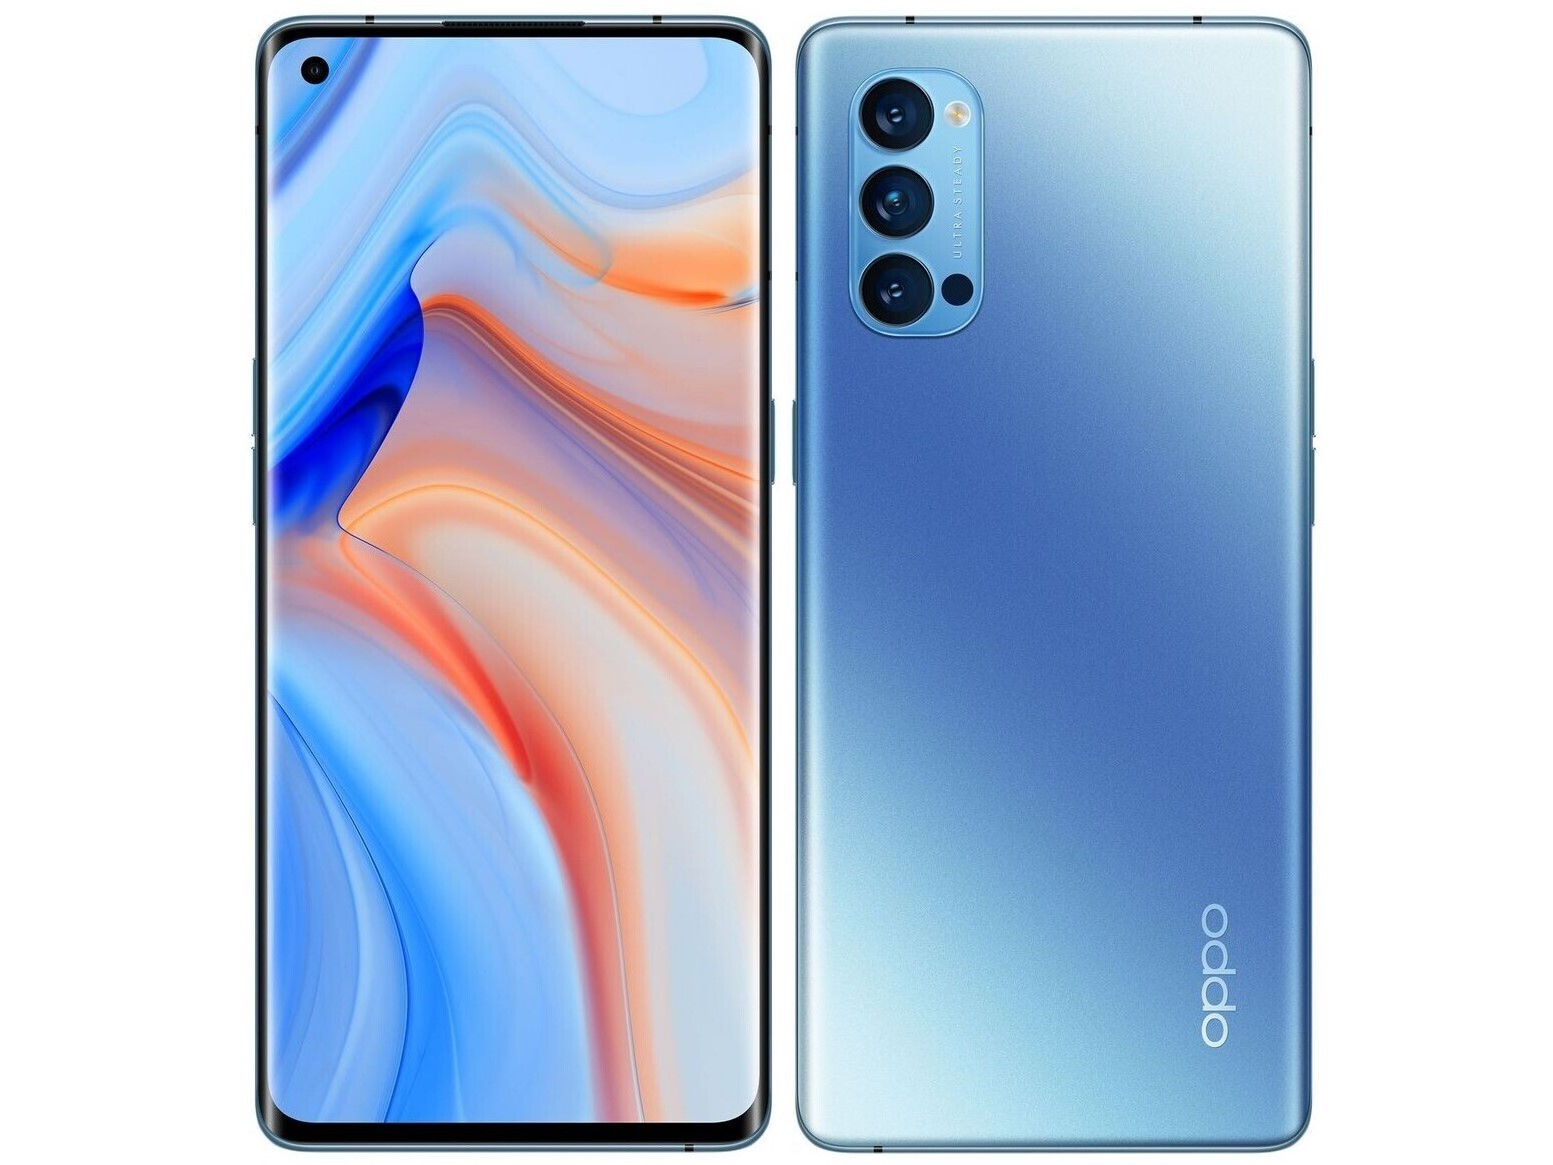 Oppo Reno4 Pro 5g Camera Review Leaning Towards Video